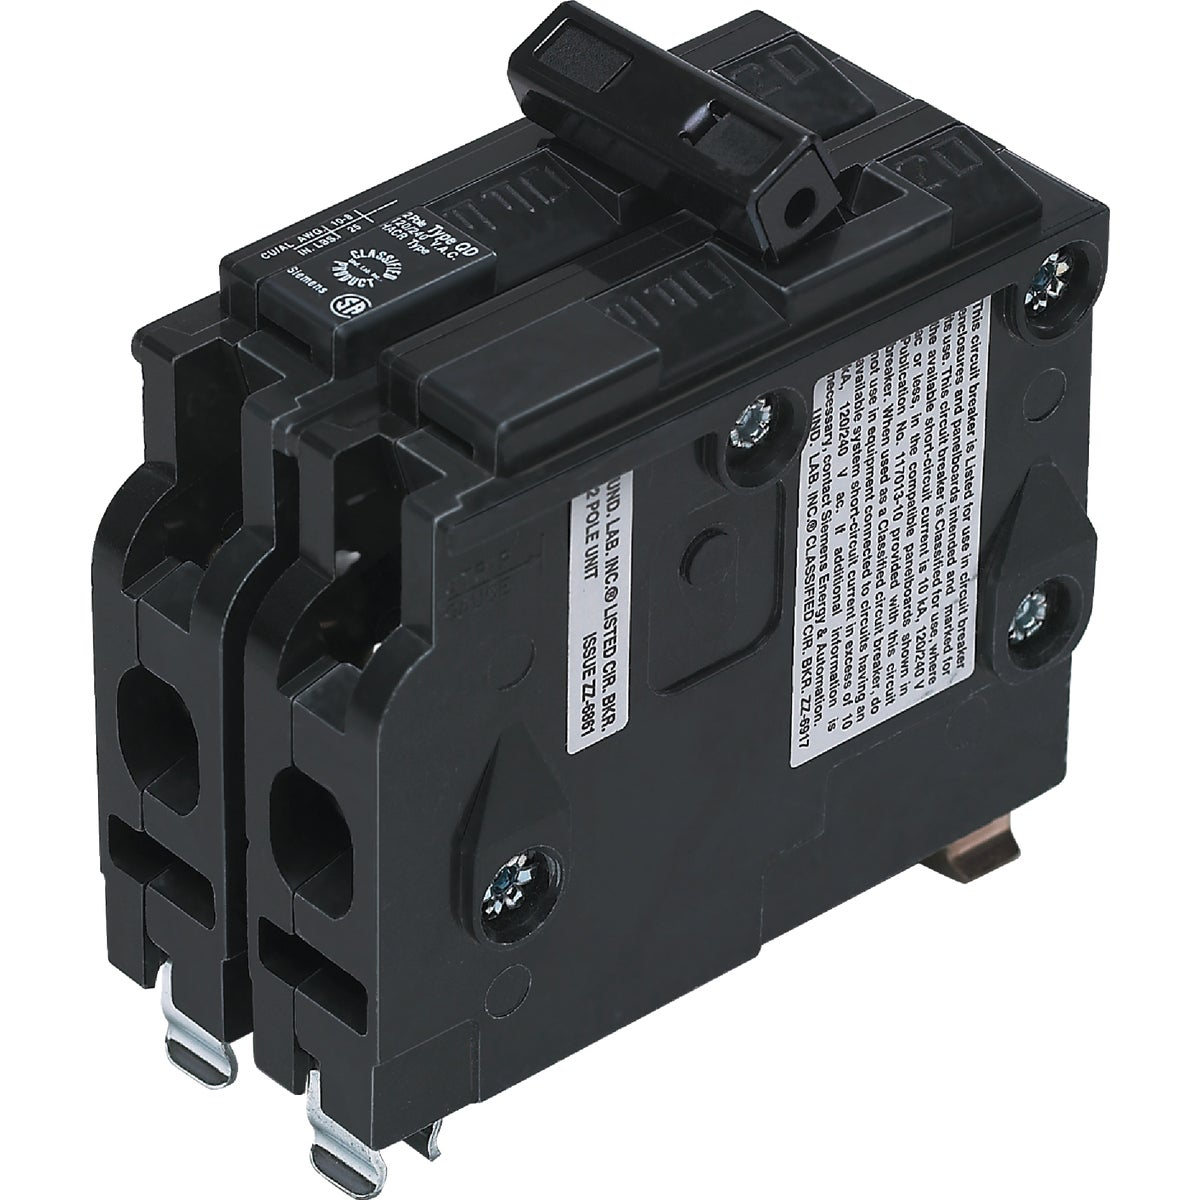 40A 2P CIRCUIT BREAKER - D240 by Connecticut Electric